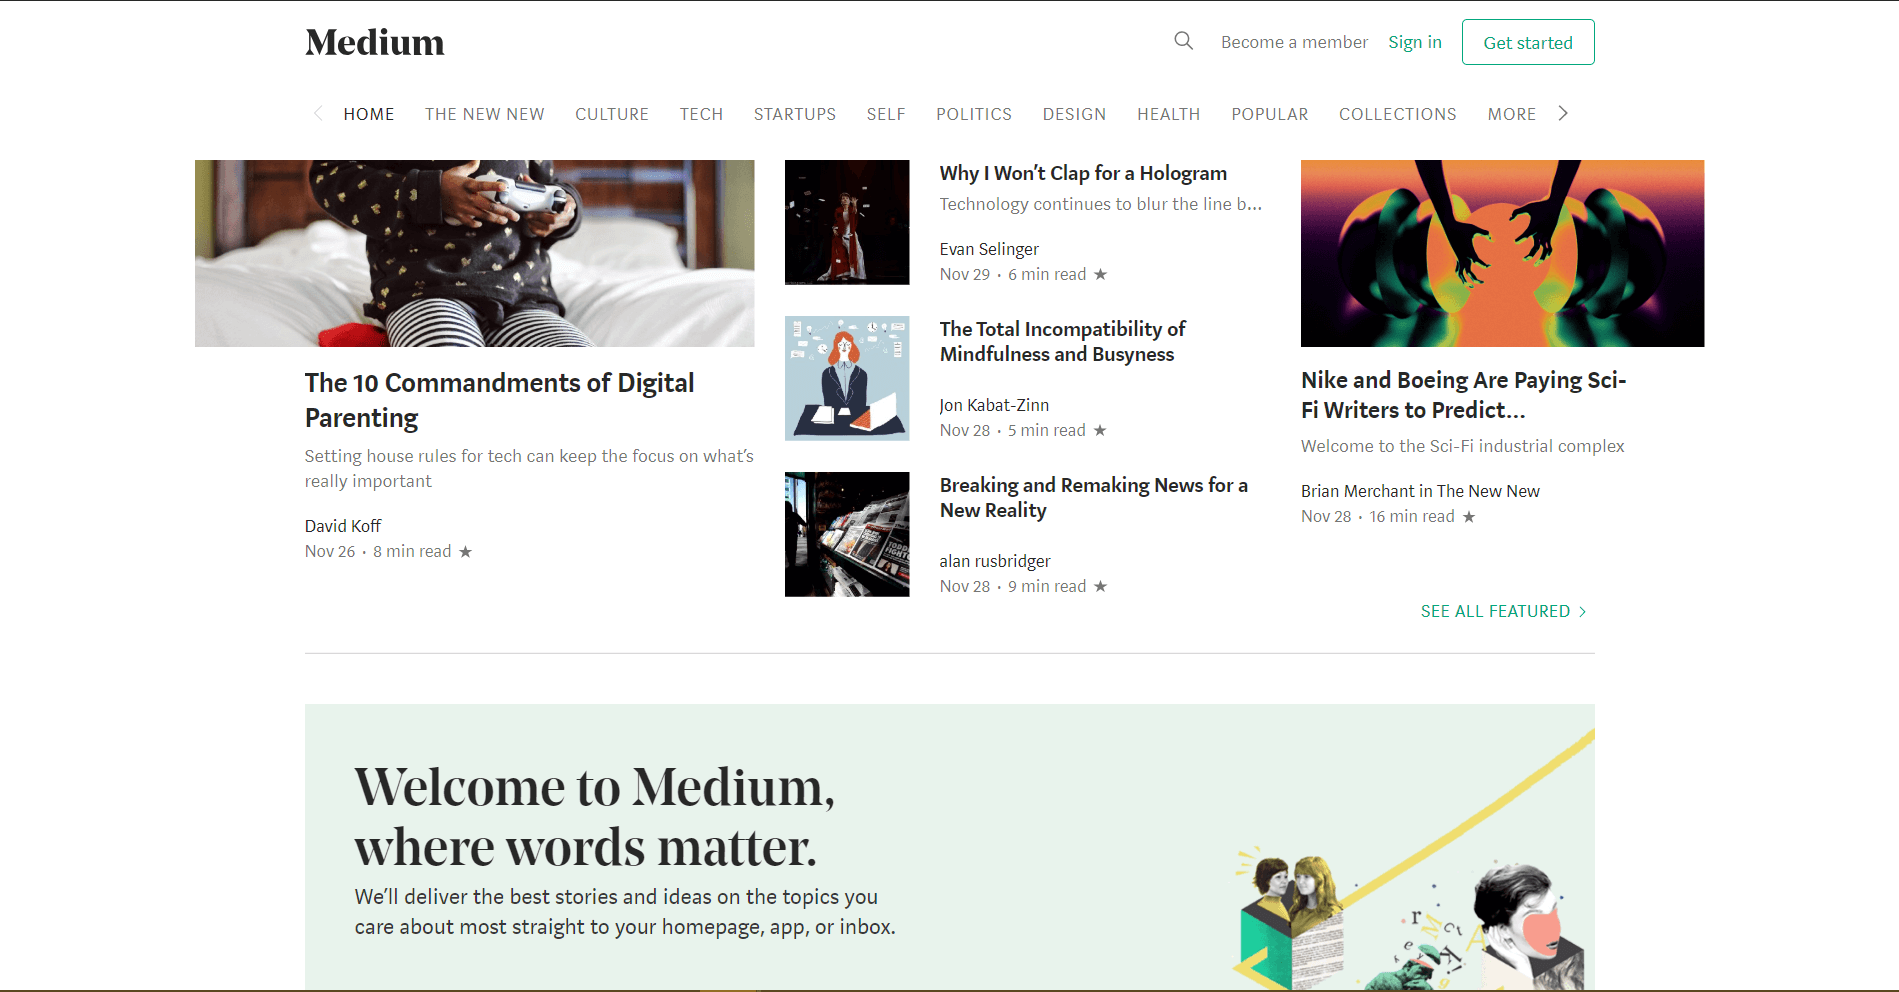 Medium Content Promotion Platforms and Tools